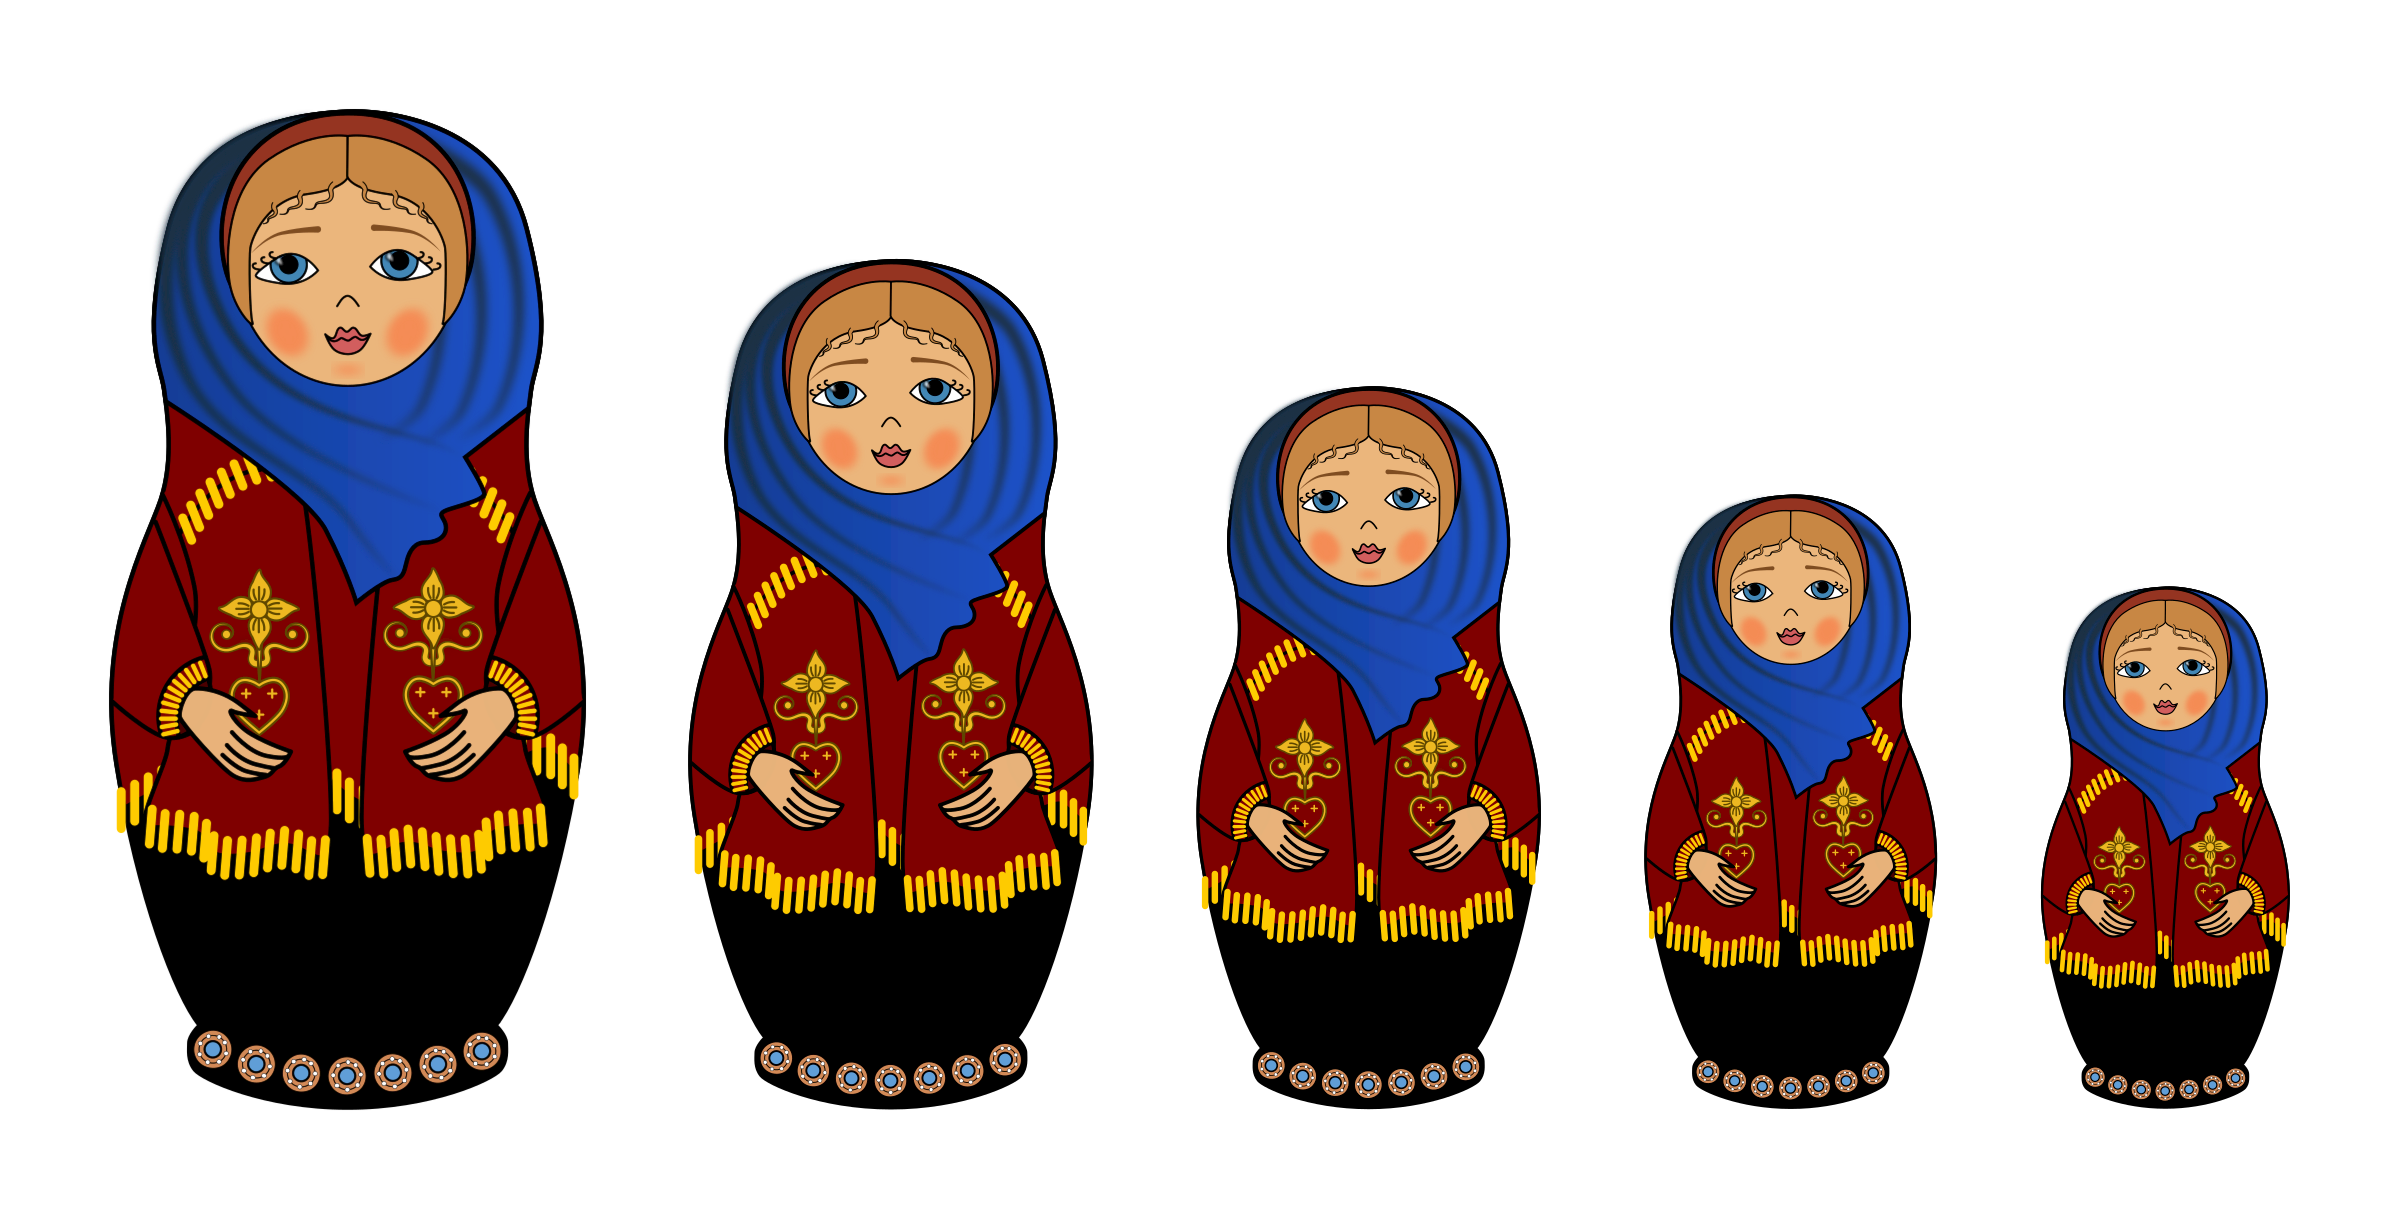 Matryoshka Doll by jimbongo